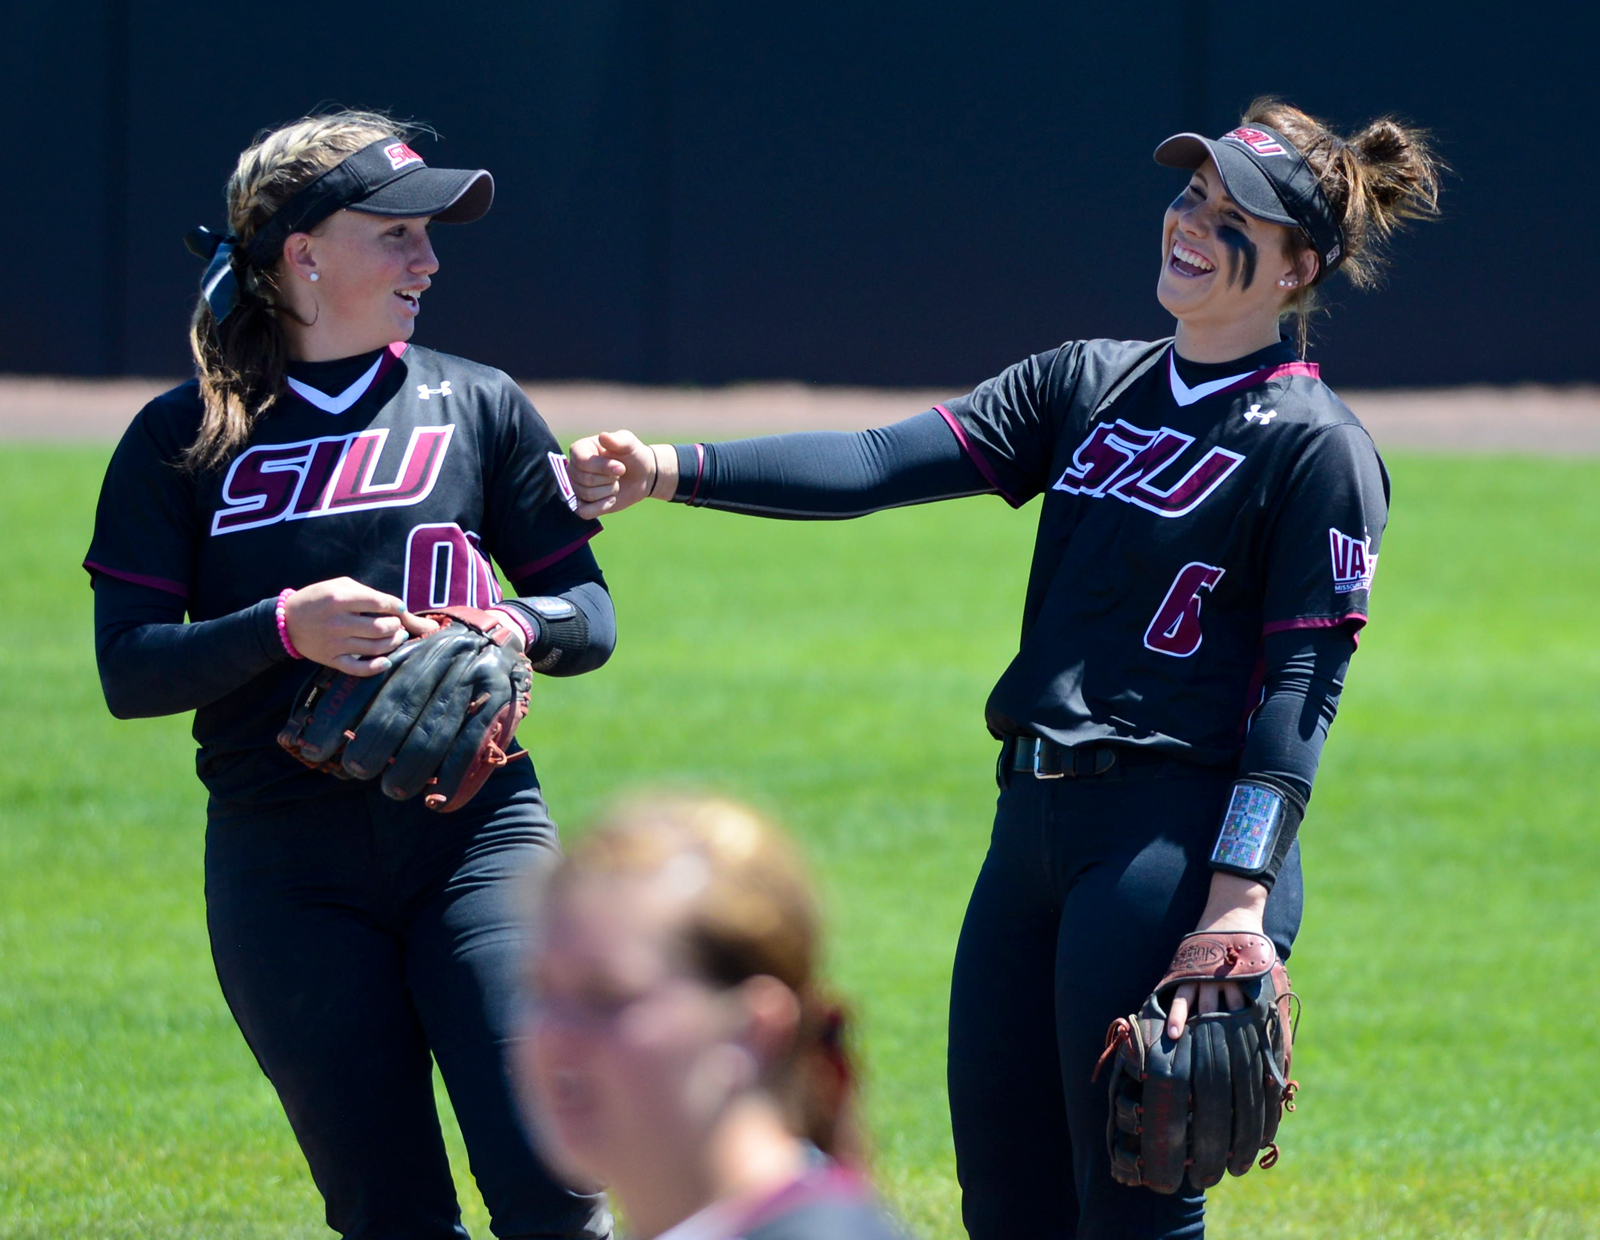 Junior third baseman Sydney Jones (left) and junior shortstop Savannah Fisher joke around before an inning during the second game of SIU's doubleheader with Wichita State on Sunday, April 23, 2017 at Charlotte West Stadium in Carbondale. The Salukis won the game 5-4. (Sean Carley | @SeanMCarley)